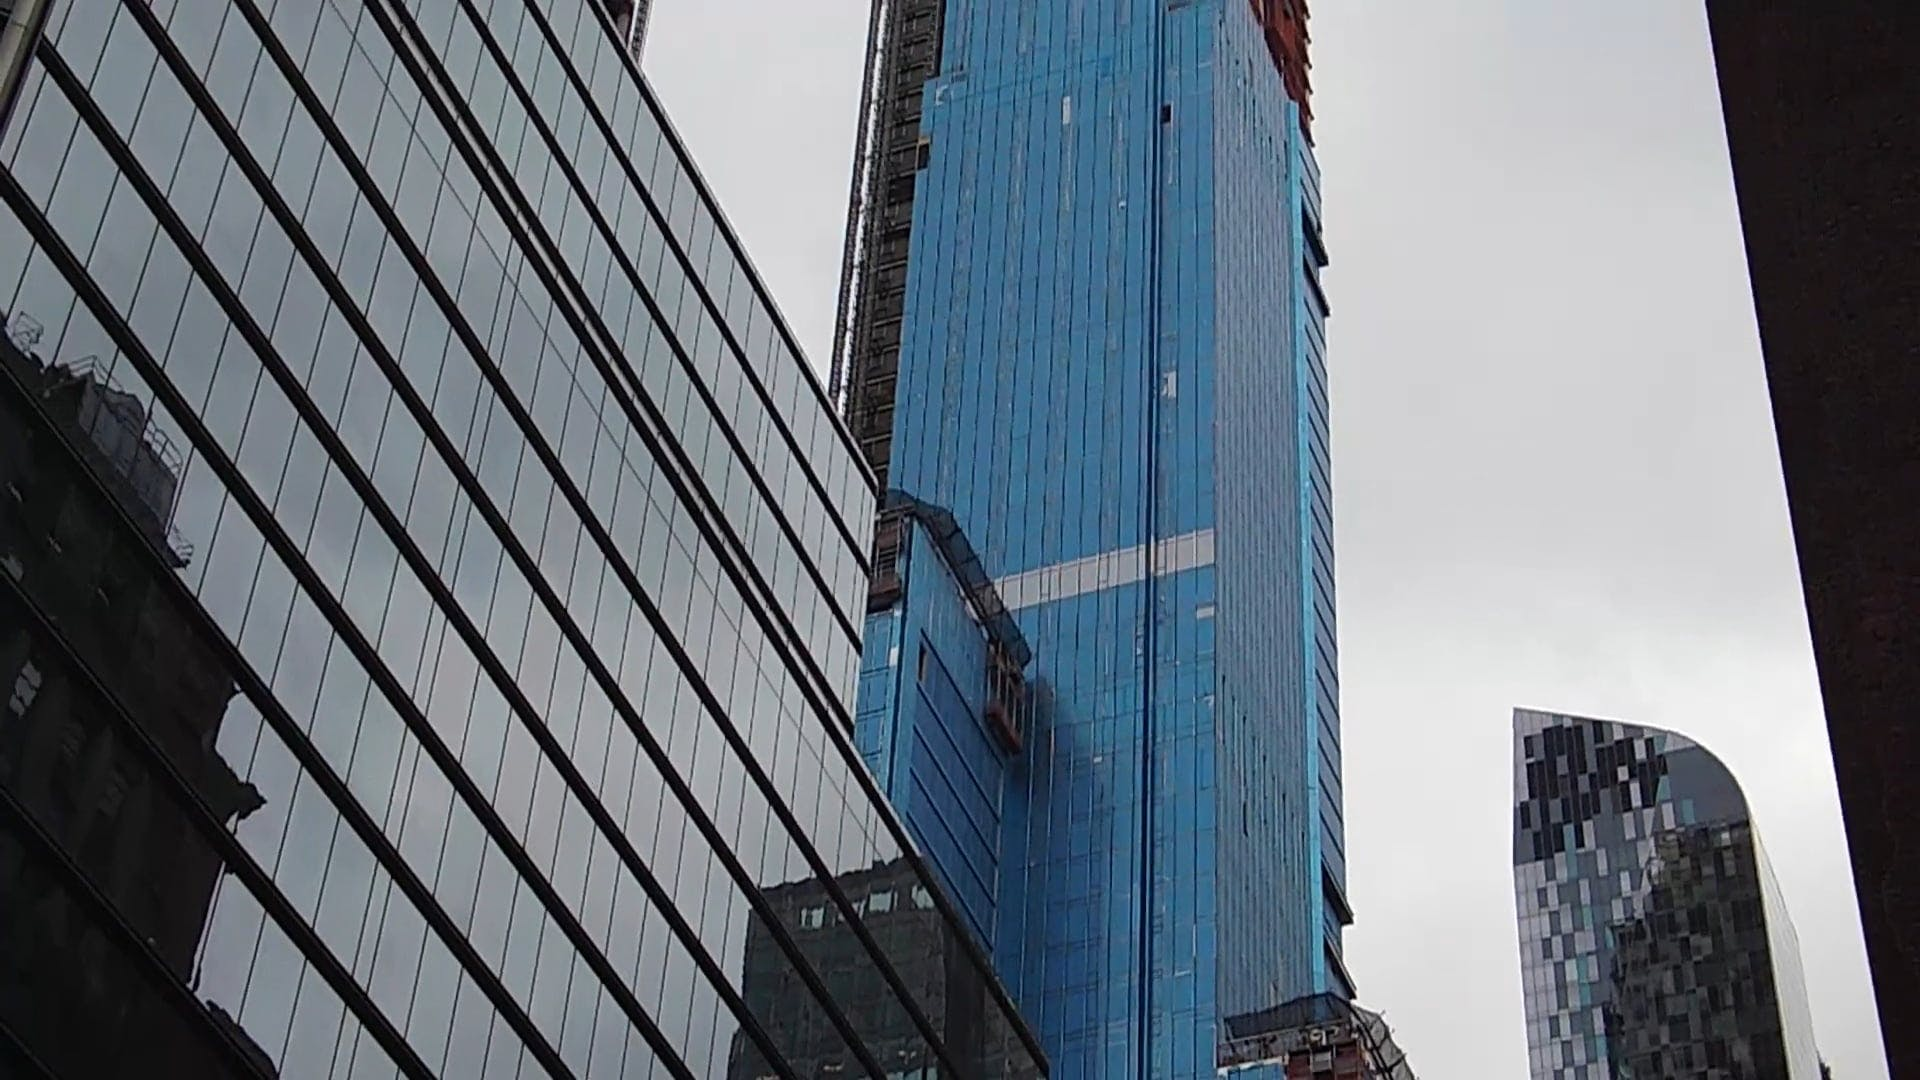 Low Angle Shot Of A Building Under Construction